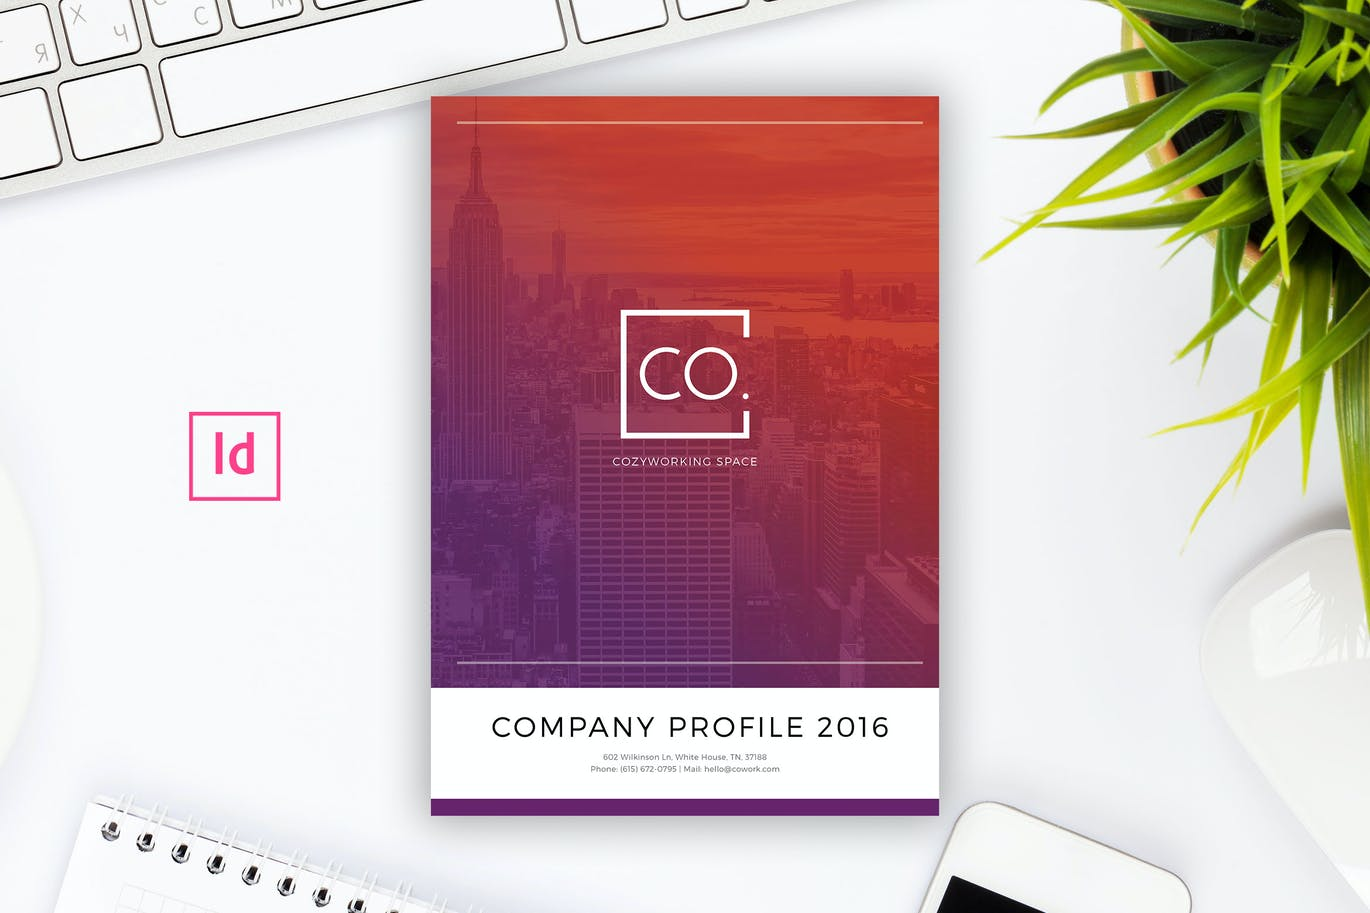 Company Profile Indesign Template by peterdraw on Envato Elements – Format of Company Profile